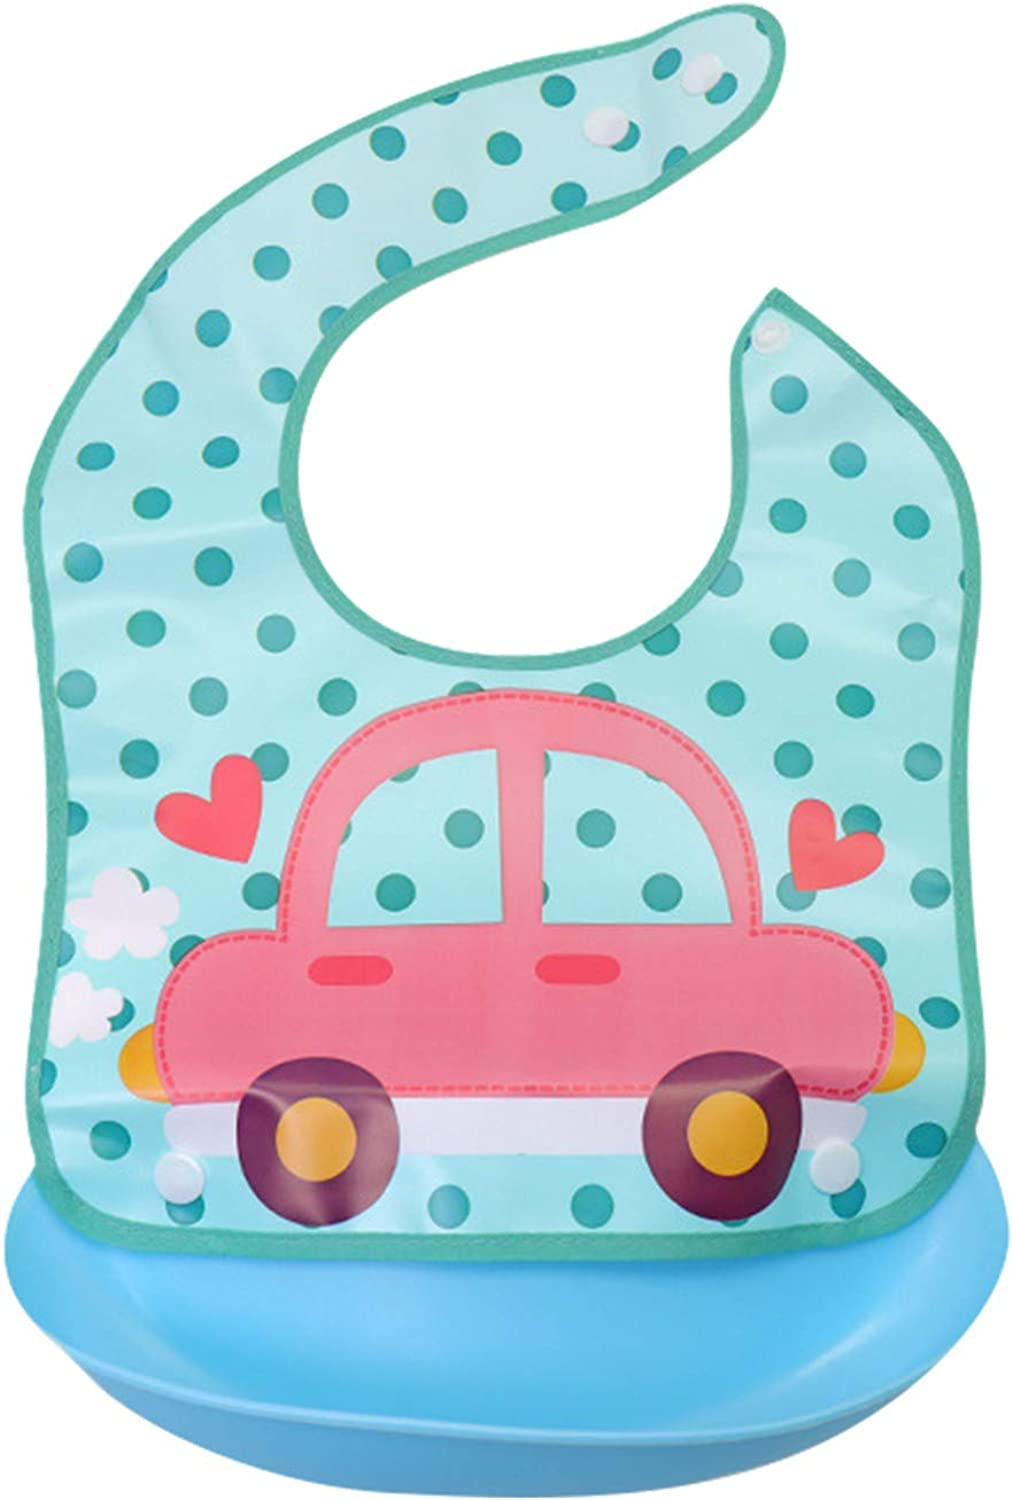 Toddlers Baby Reusable And Washable Cute Cartoon Bibs With Silicone Food Catcher, Waterproof, Stain and Odor Resistant